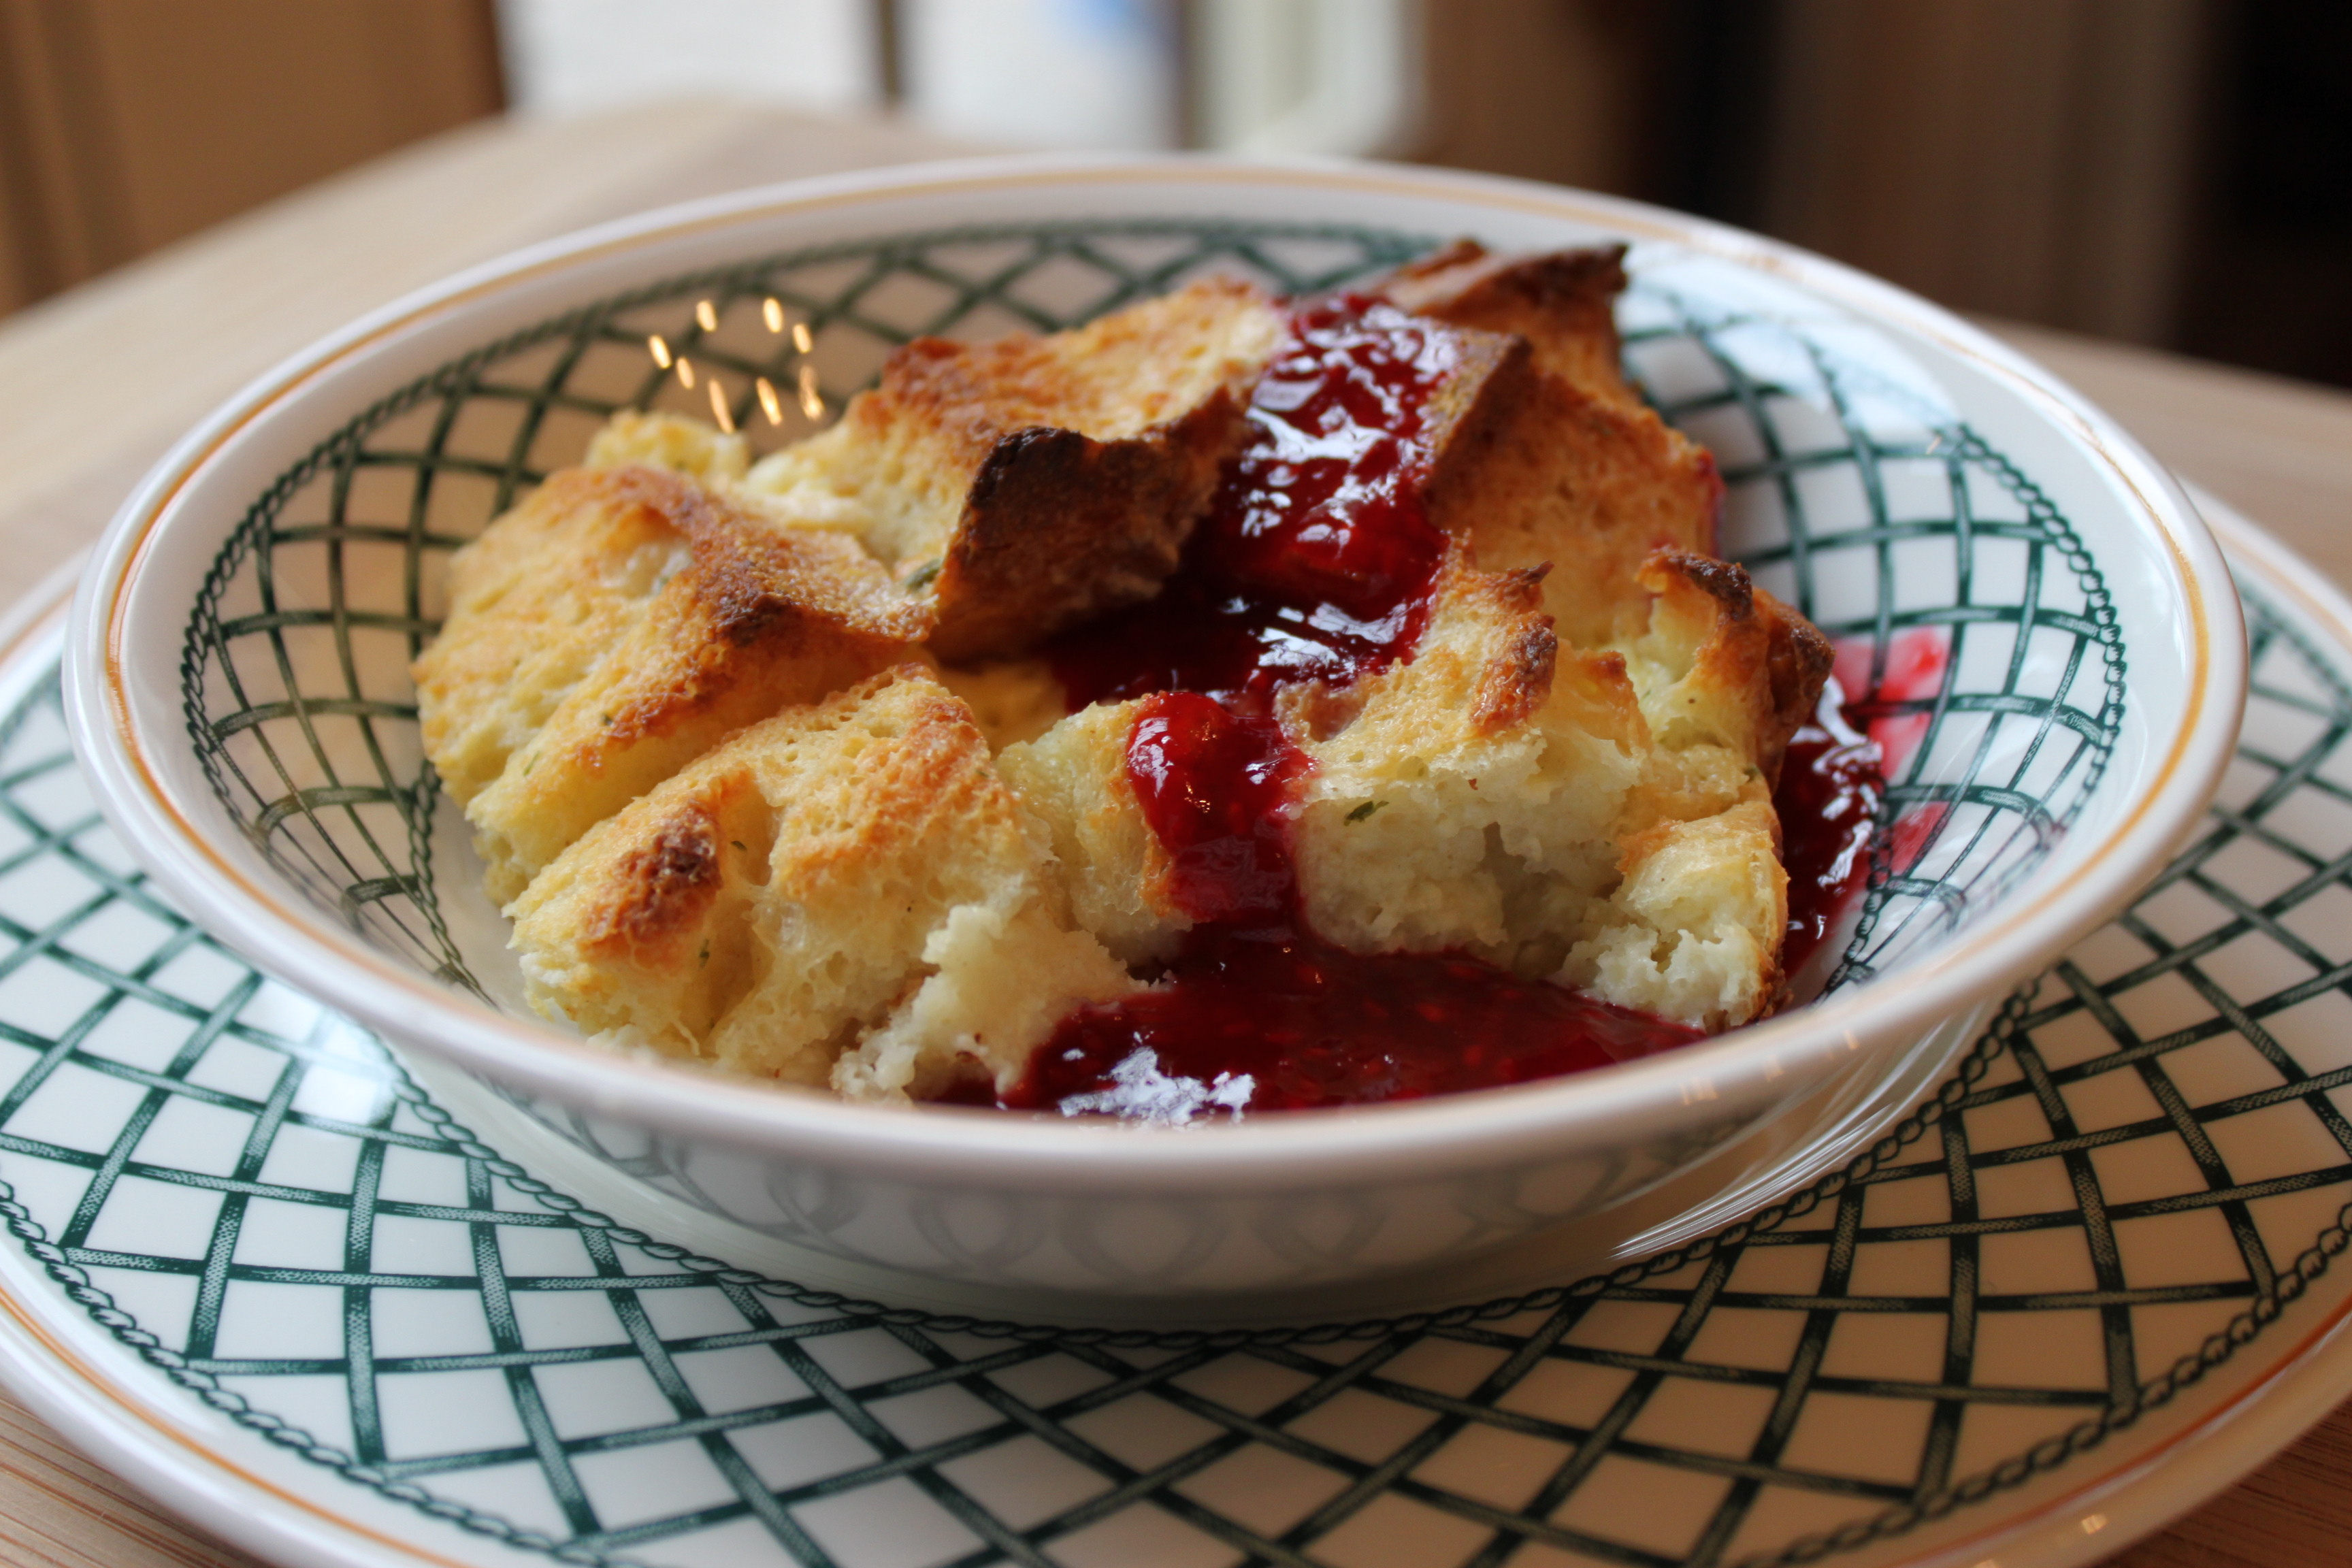 Herby Sweet and Savory Bread Pudding